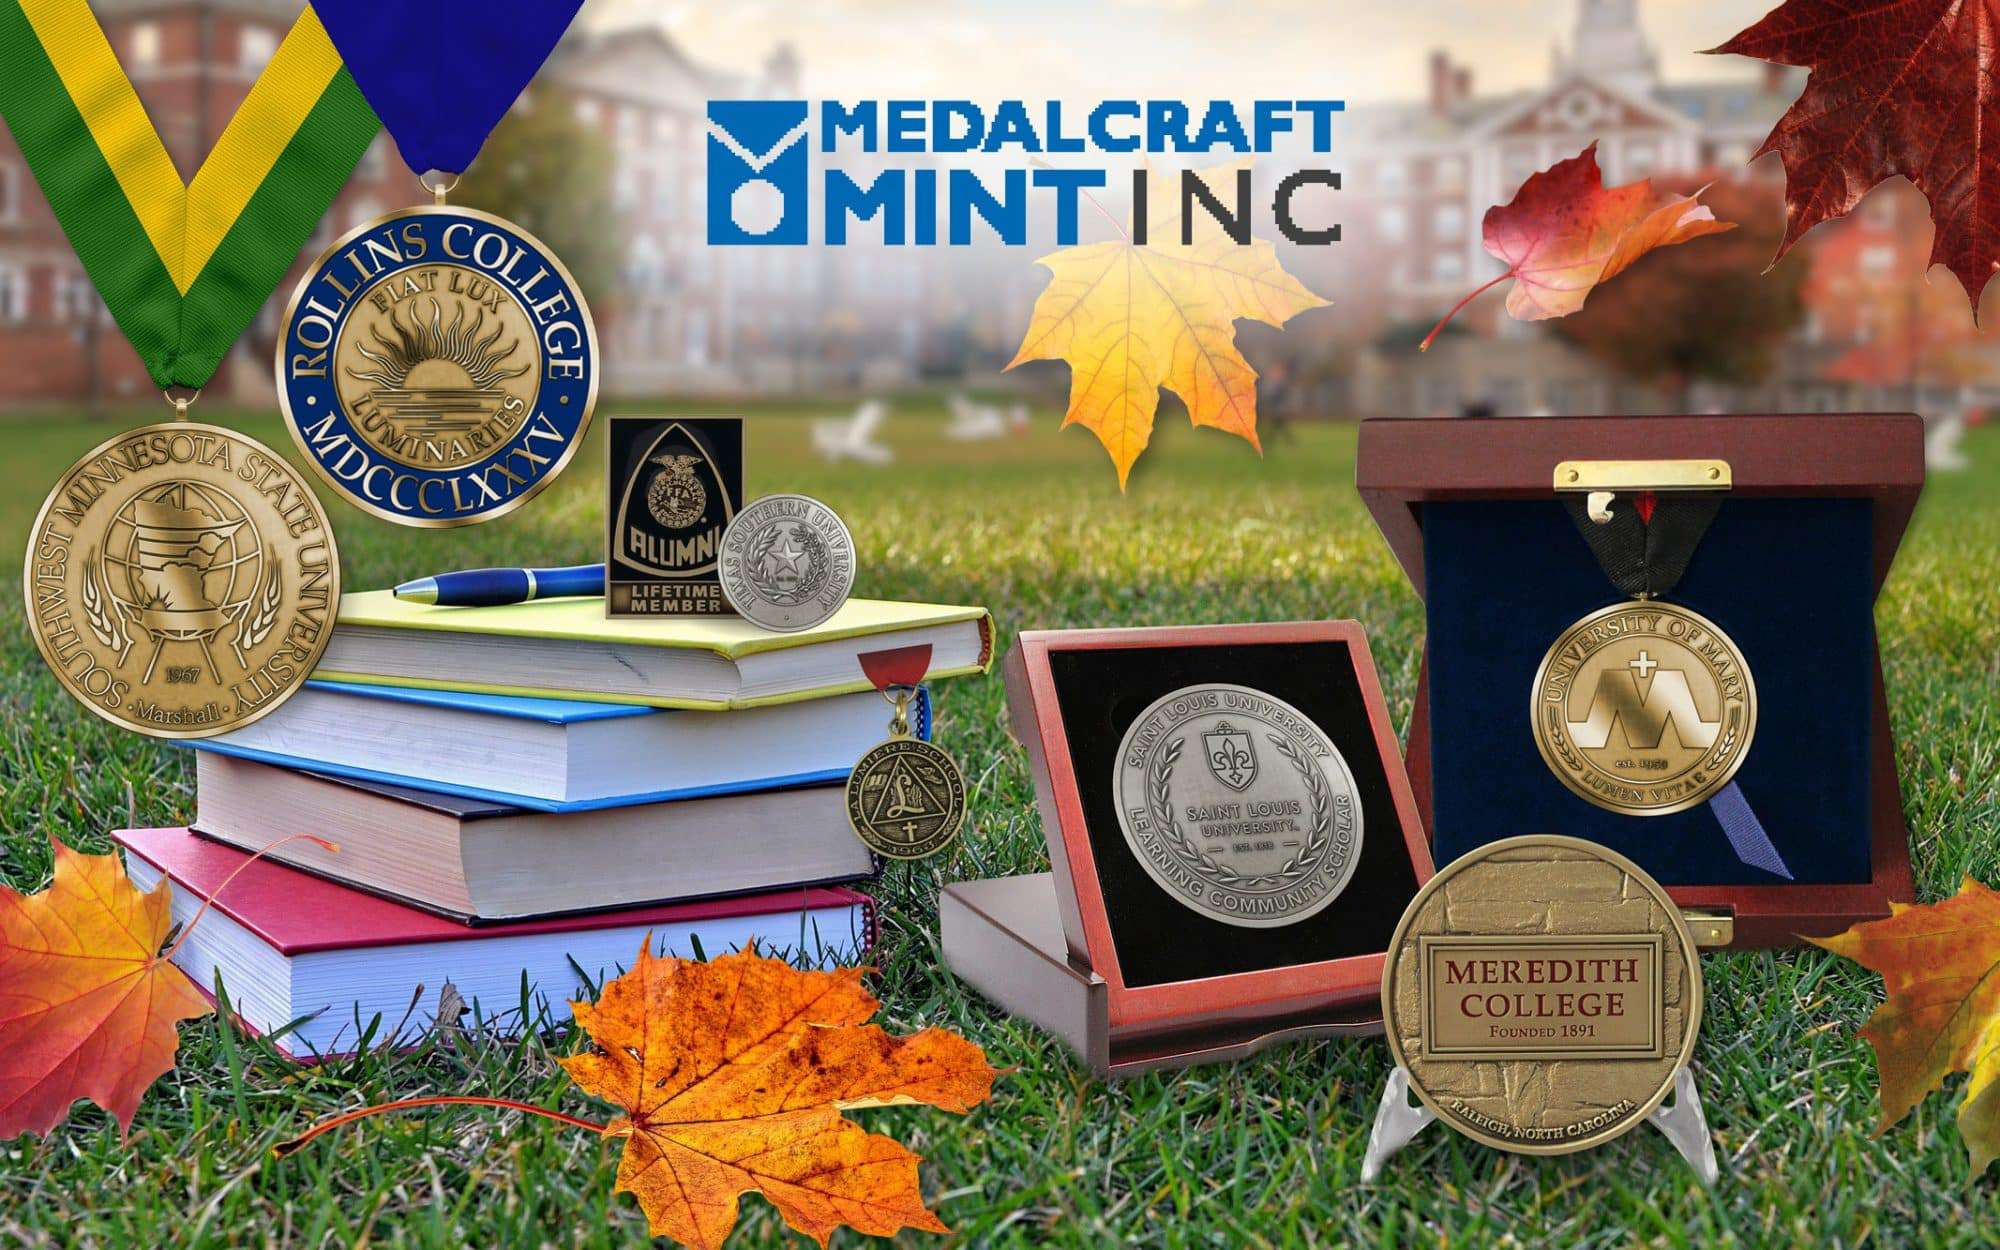 Let Medalcraft Mint design your collegiate medallions